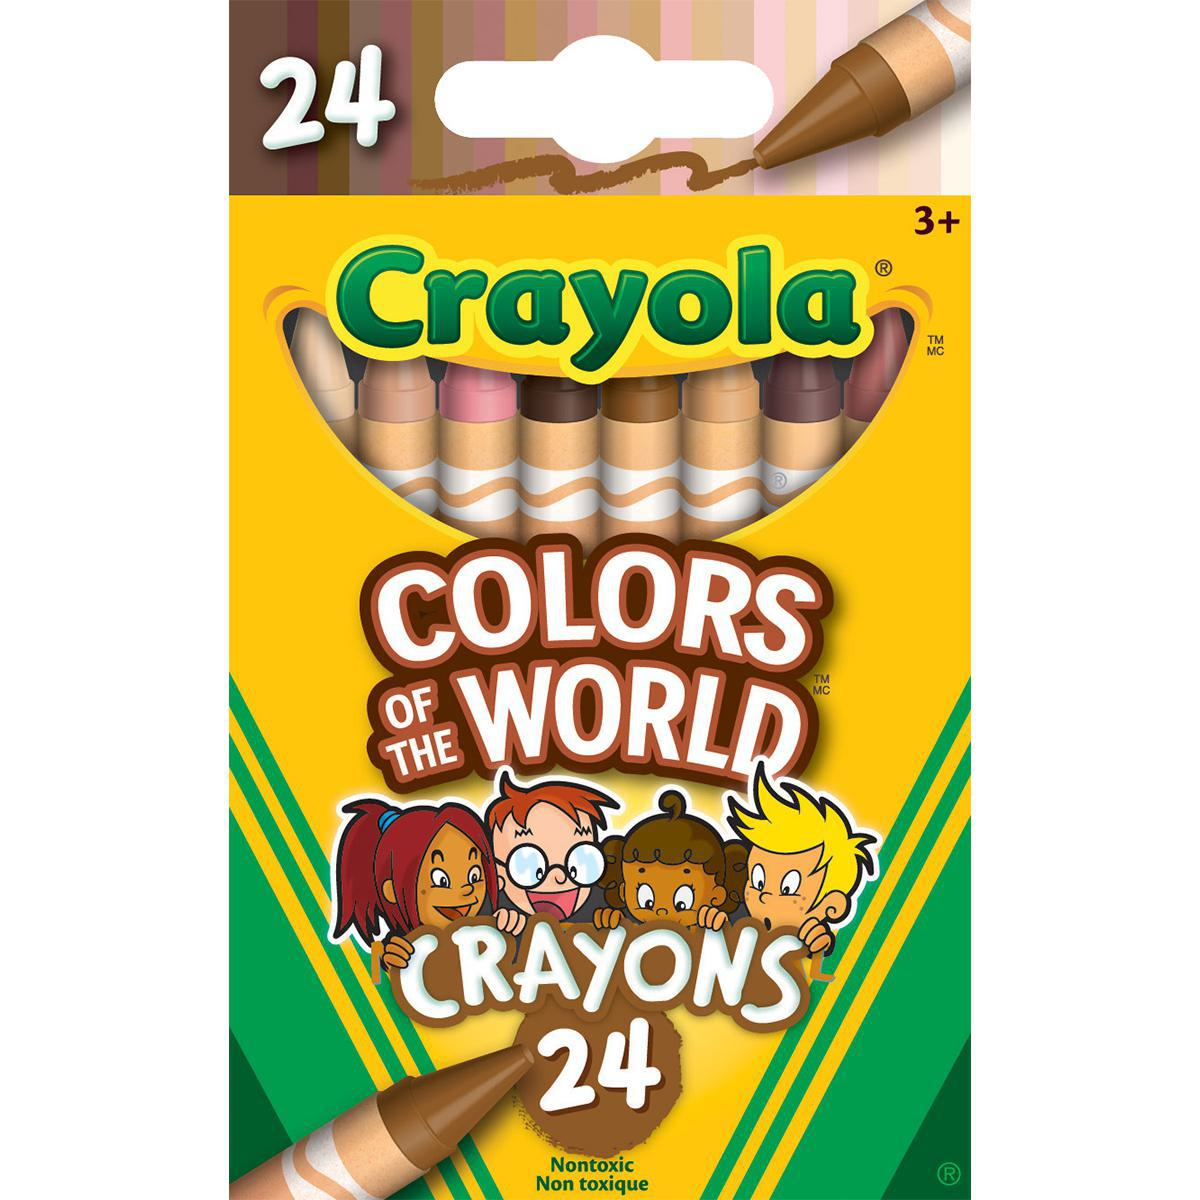 Crayola Colors of the World Crayons 24-pack